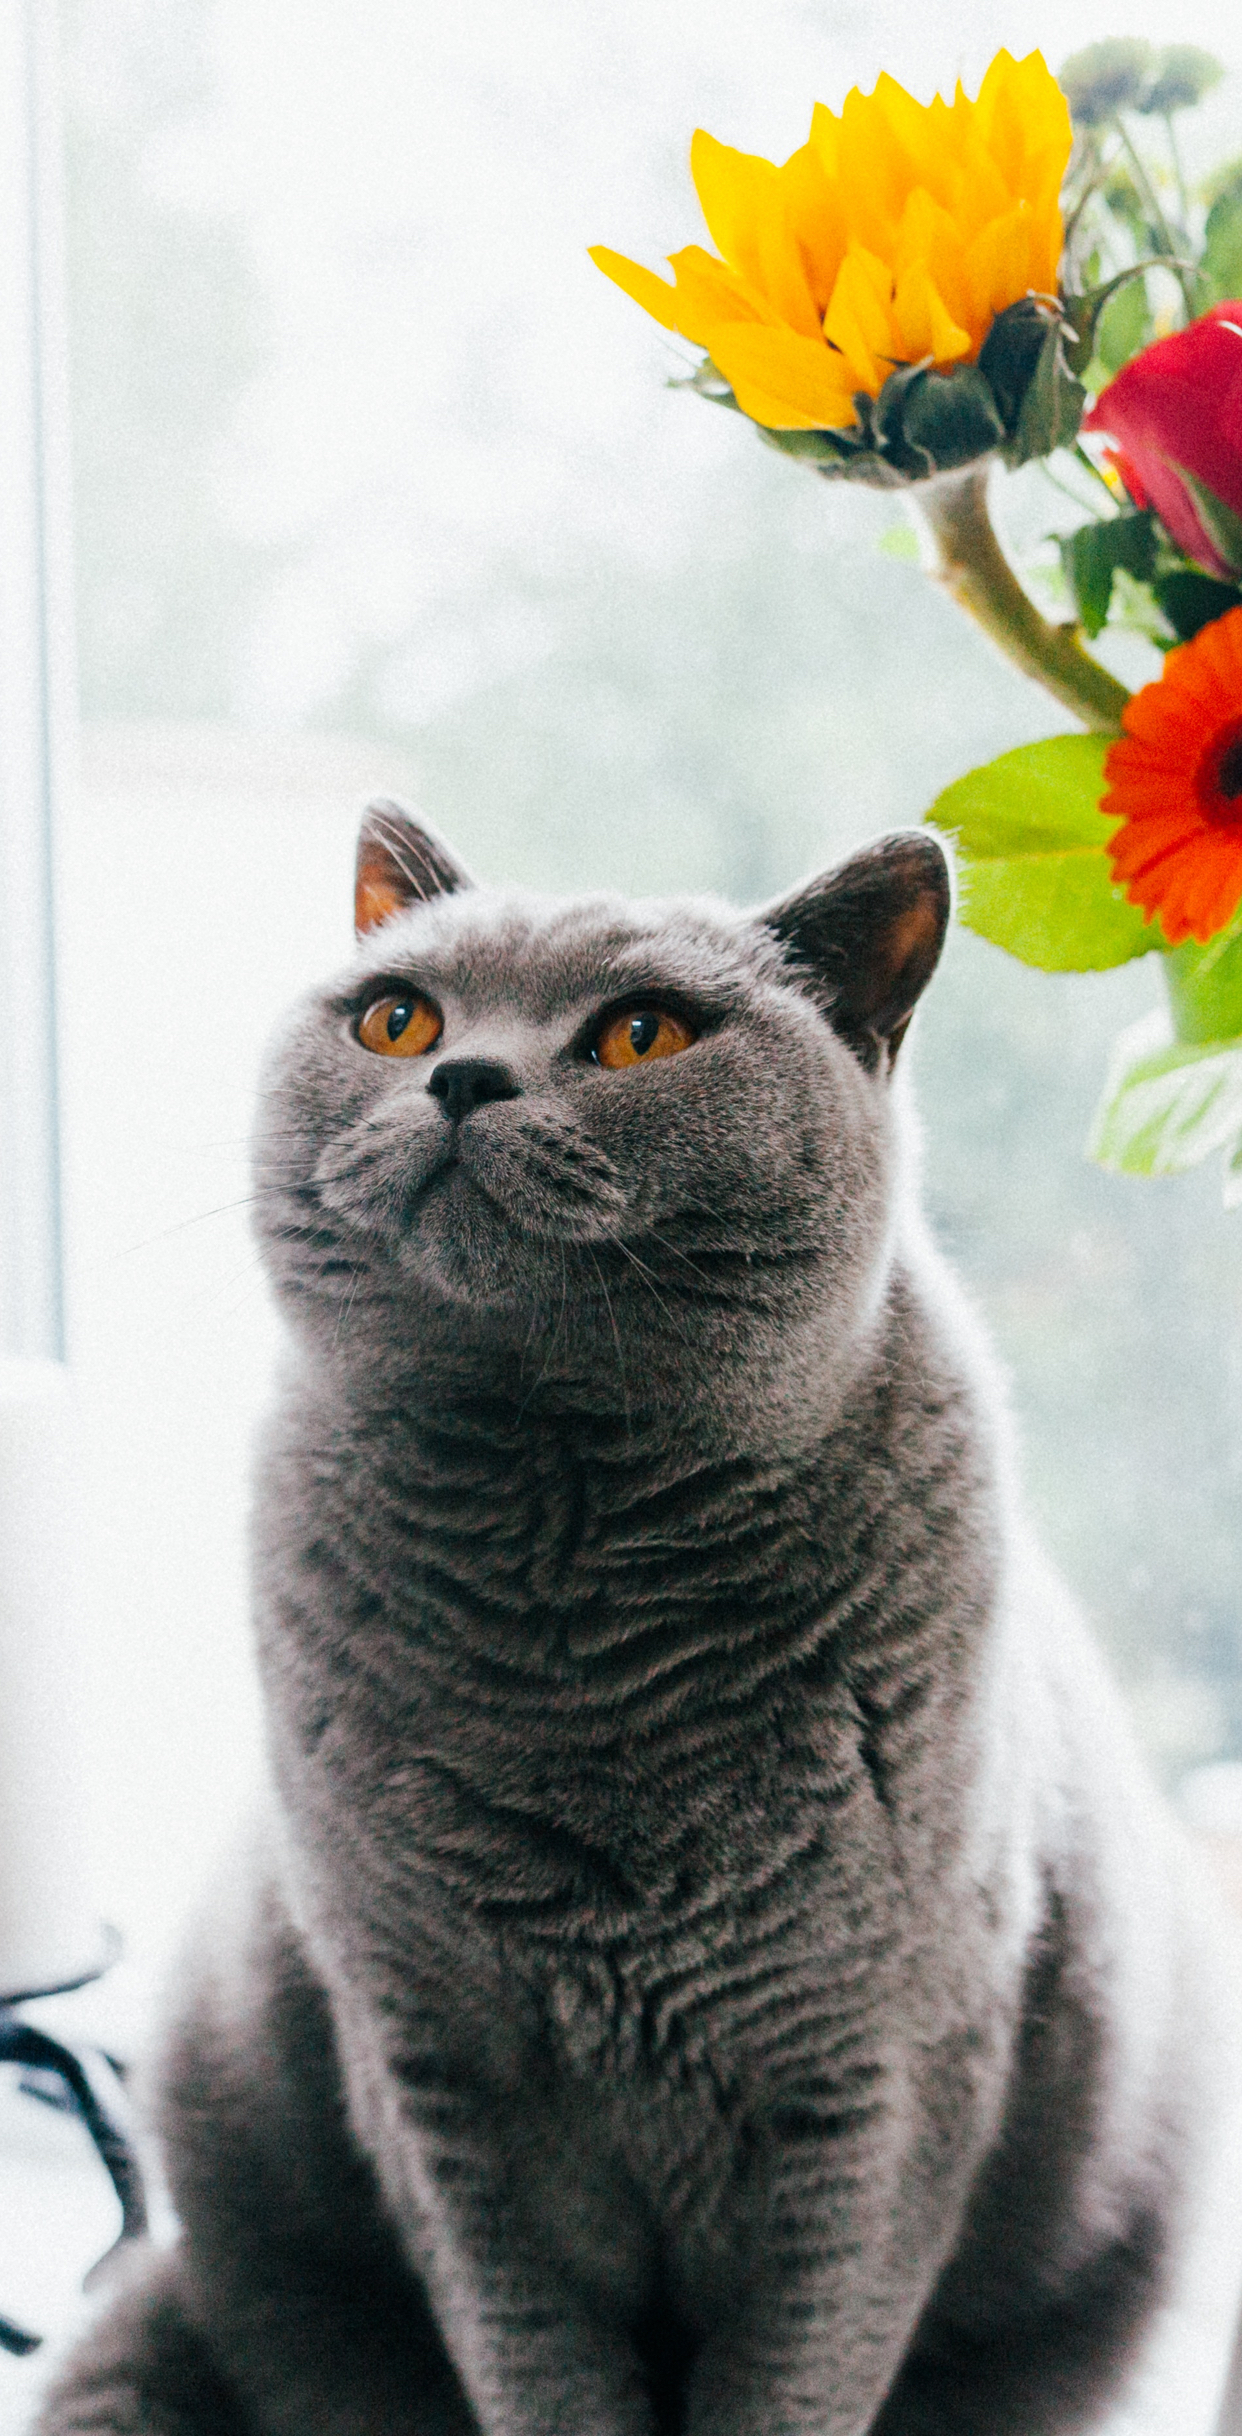 Cute Cat Wallpapers Hd For Mobile Phone I Like Cats Very Much